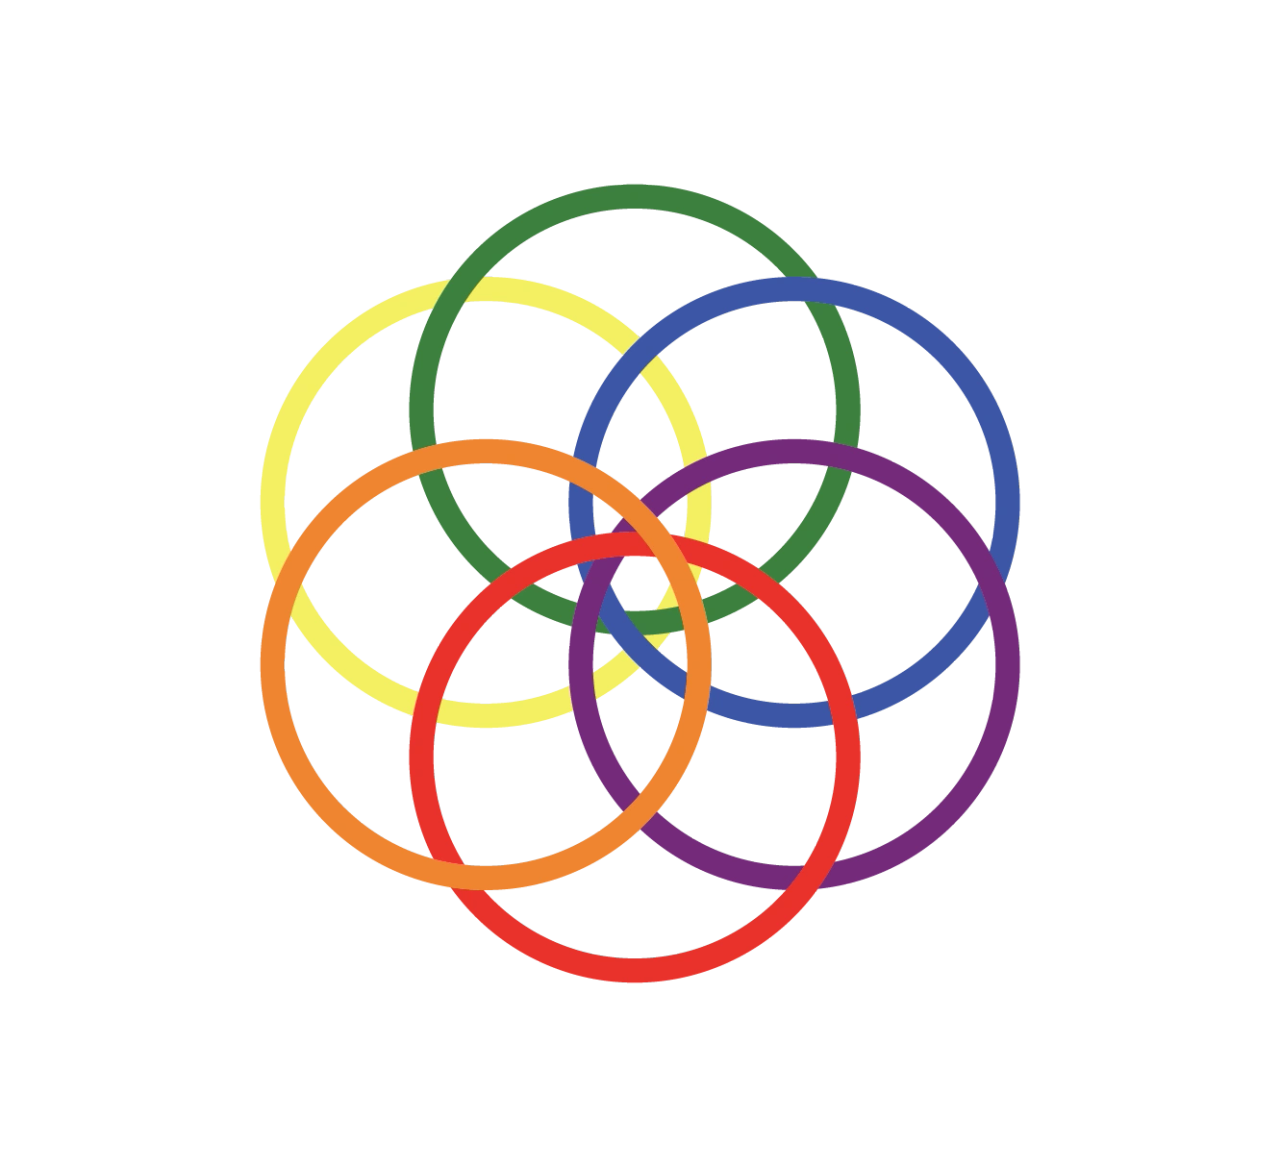 Six interlinking rings of the following colors: green, yellow, blue, purple, red, and orange.